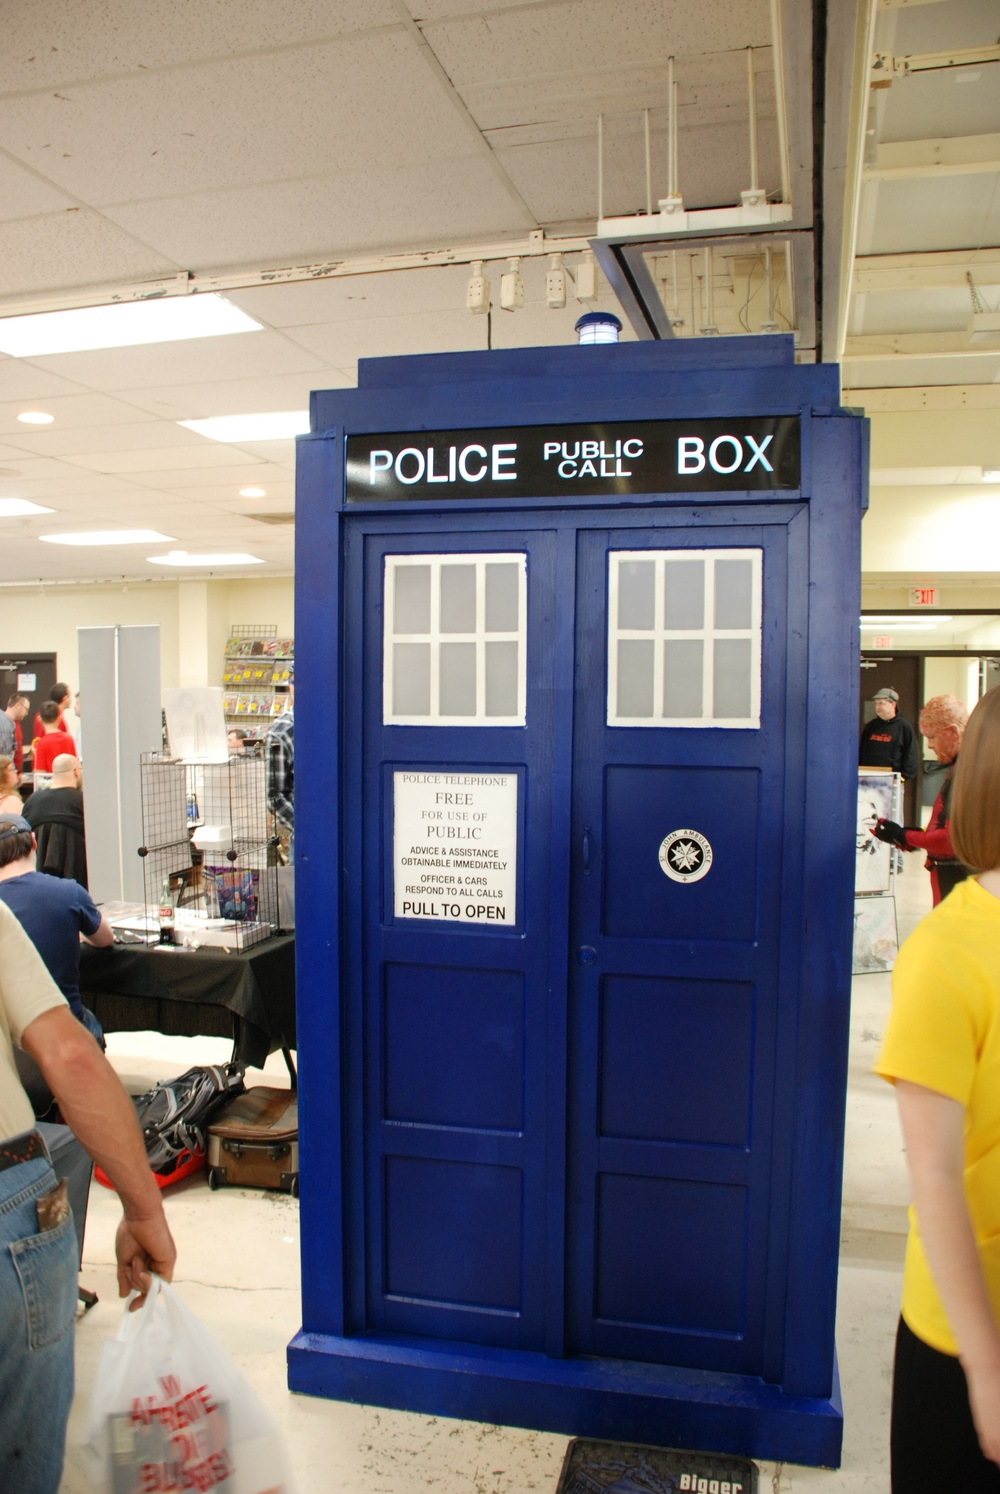 We found the TARDIS! Gues there may be some timey-wimey stuff going on...